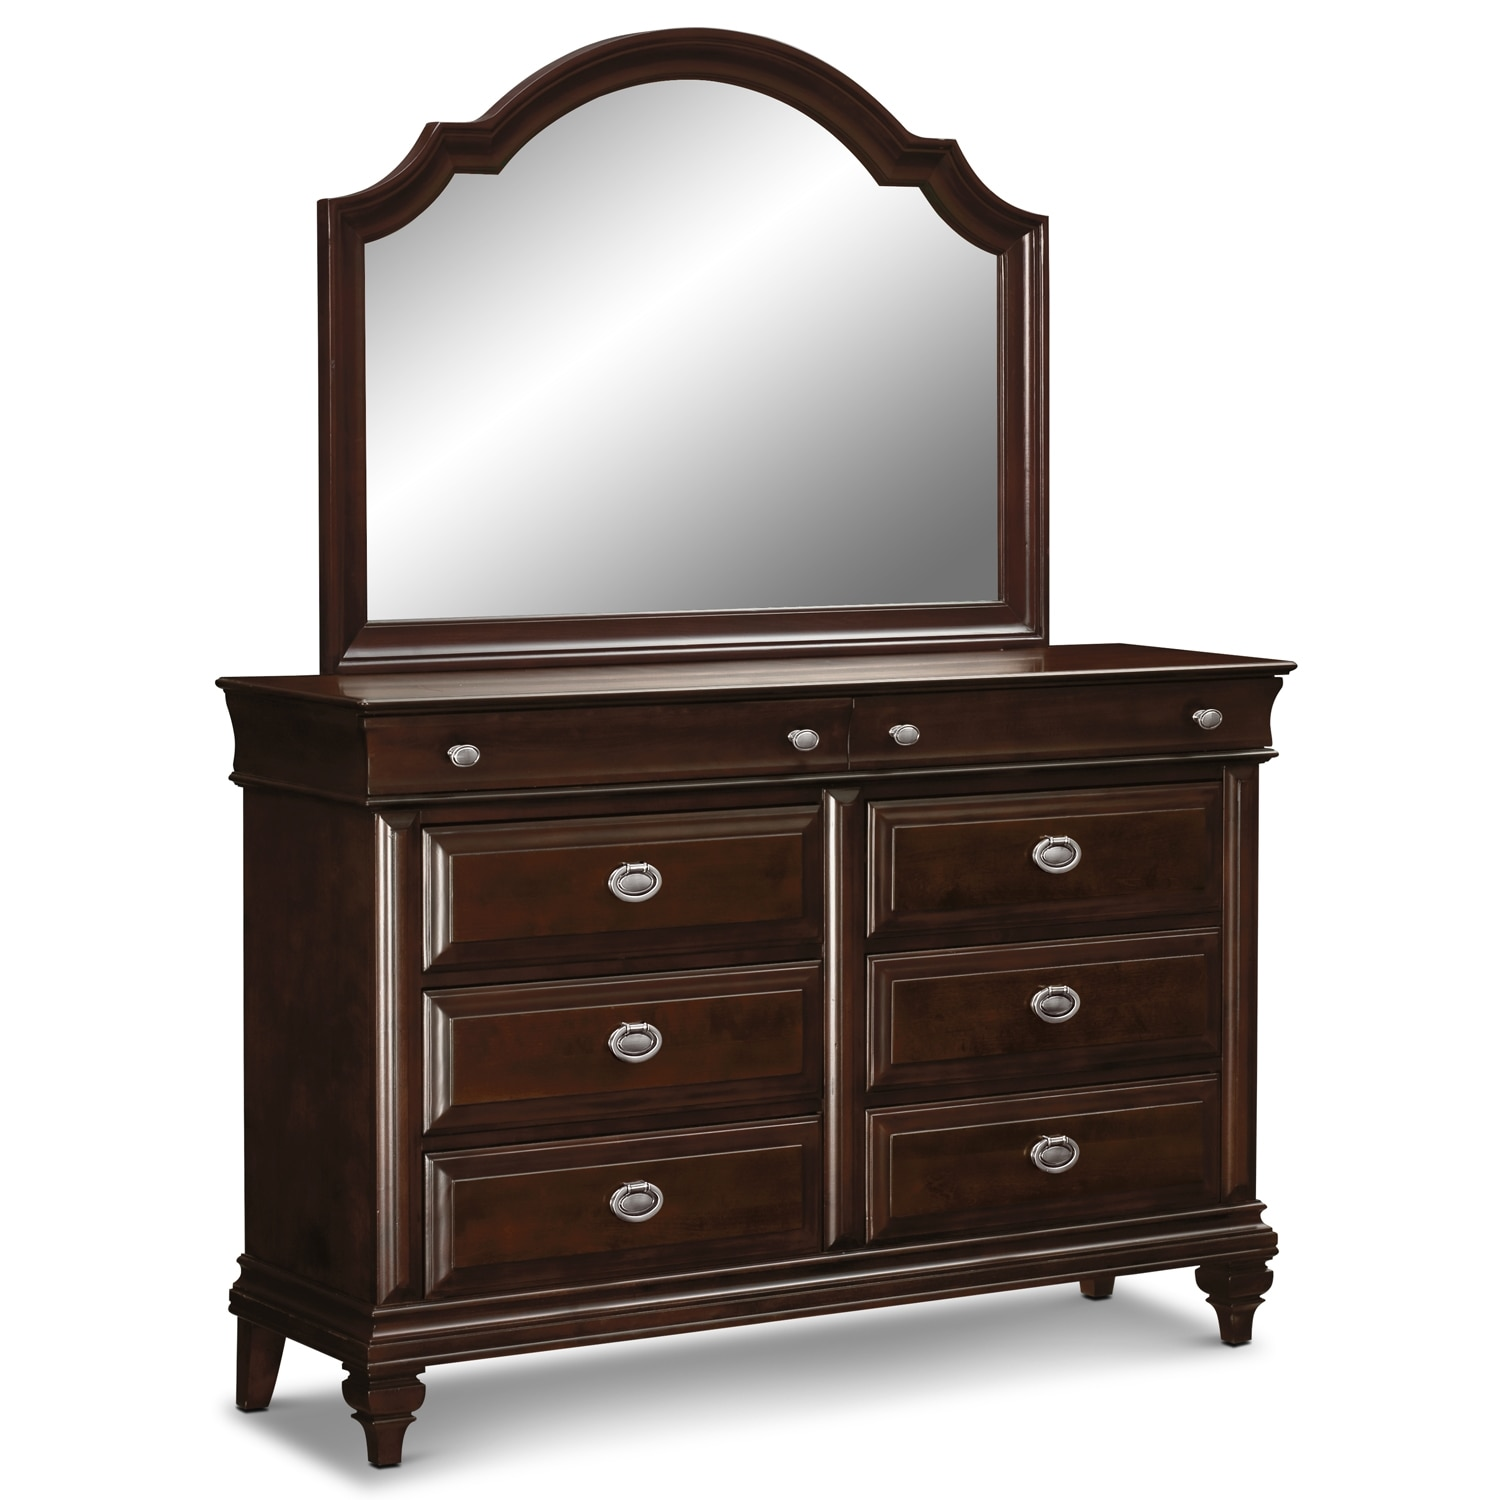 Manhattan Dresser and Mirror - Cherry